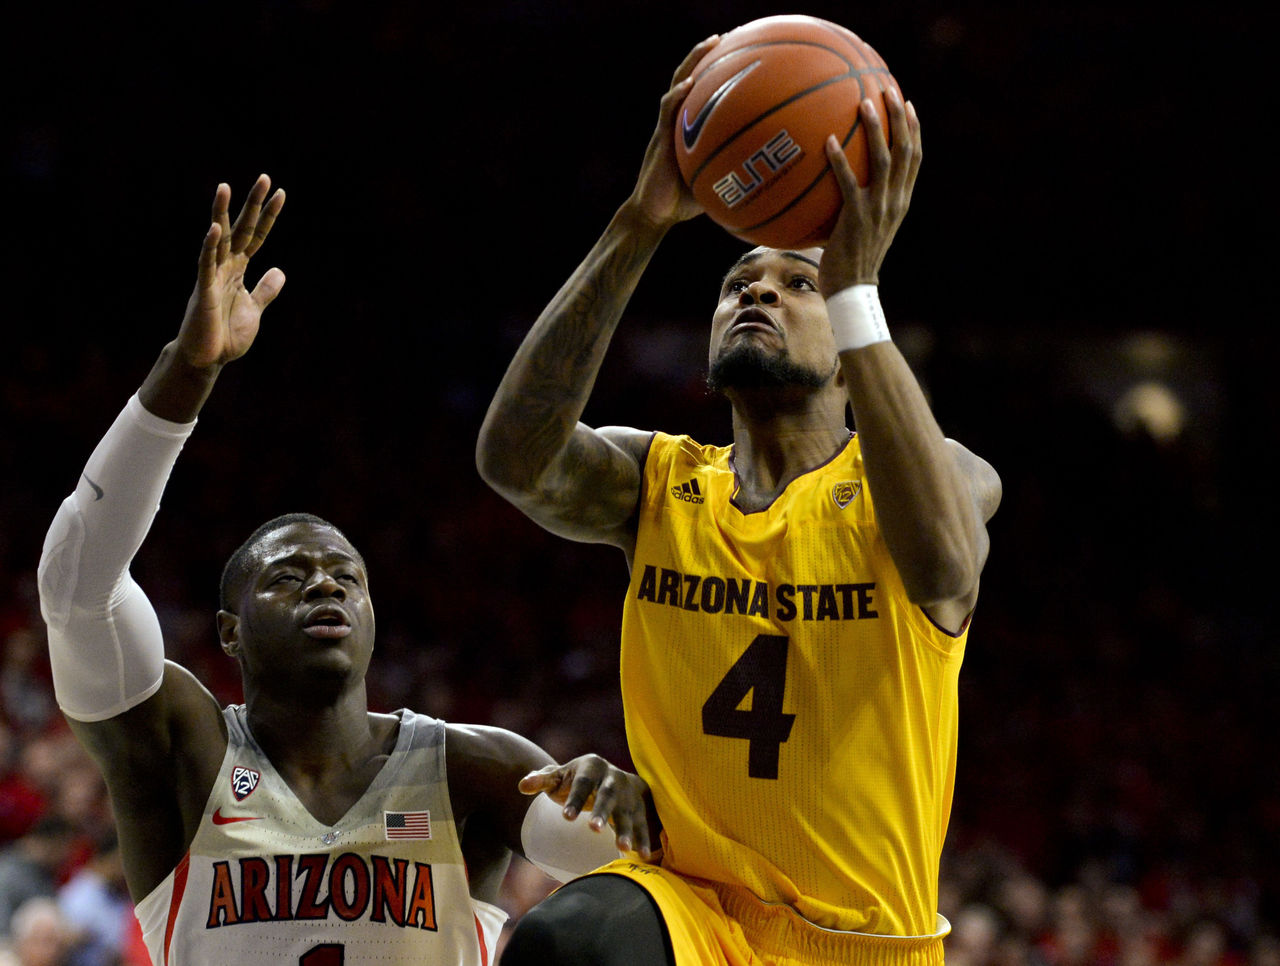 Cropped_2017-01-13t030840z_903867083_nocid_rtrmadp_3_ncaa-basketball-arizona-state-at-arizona